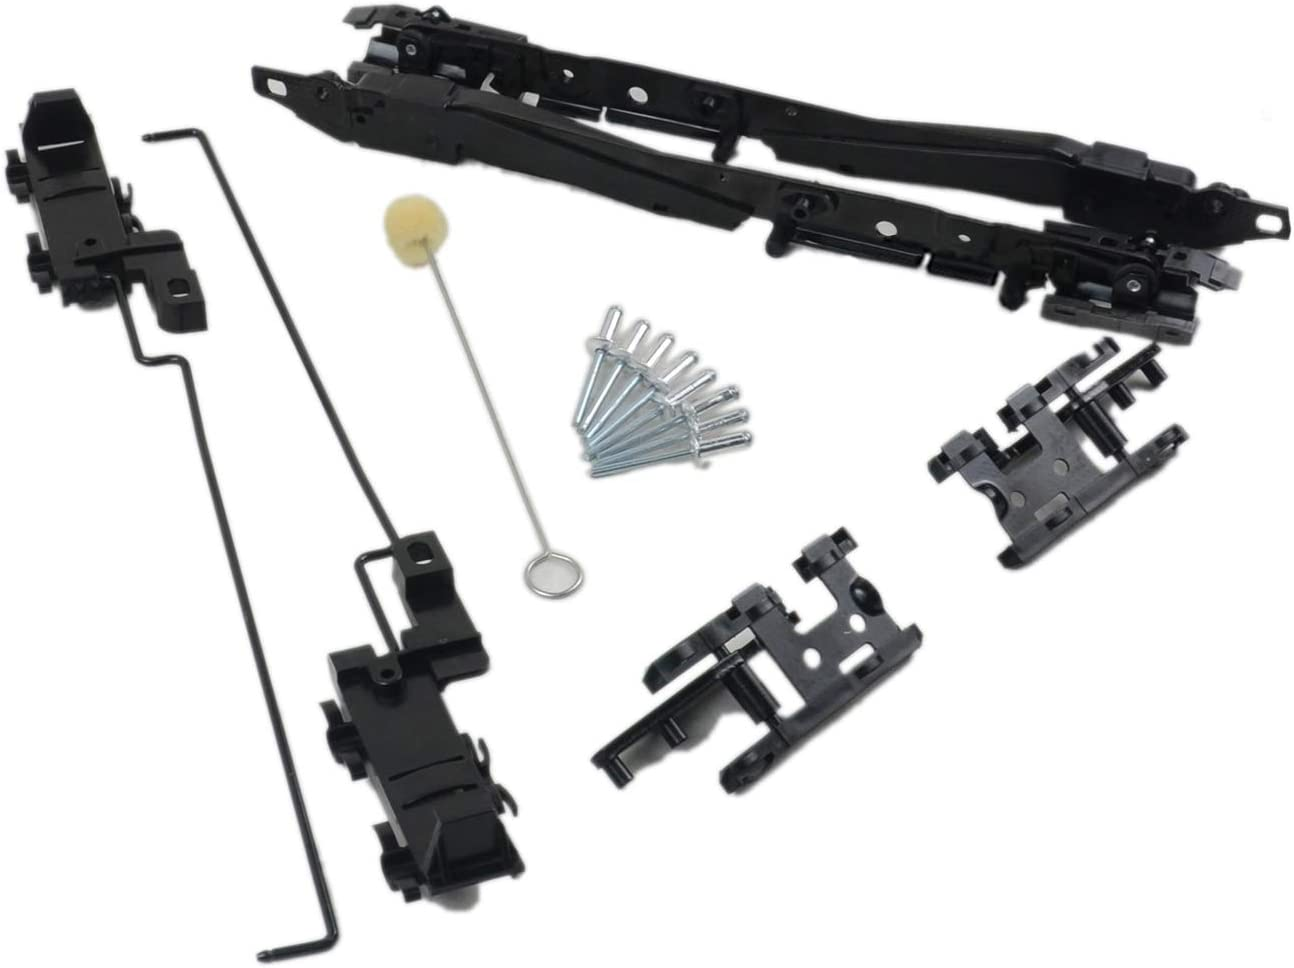 Sunroof Track Repair Kit for 2000-2014/Ford/F150 2000-2017/Ford/Expedition 2005-2016/Ford/F250/F350/F450/Super/Duty 2000-2017/Lincoln/Navigator 2006-2008/Lincoln/Mark/LT